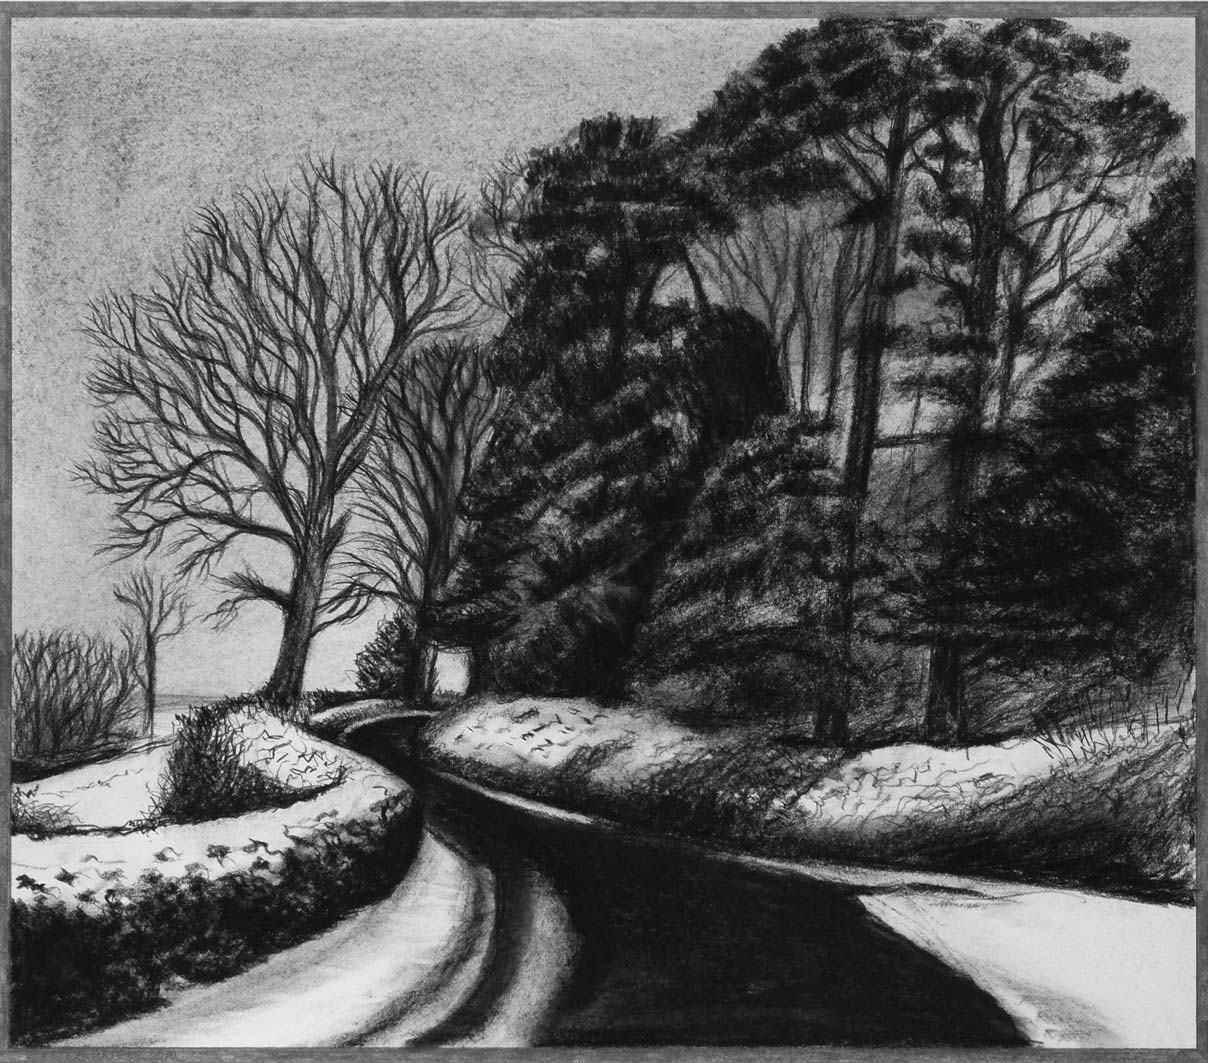 Snow on Motcombe Hollow, charcoal & conte, private collection